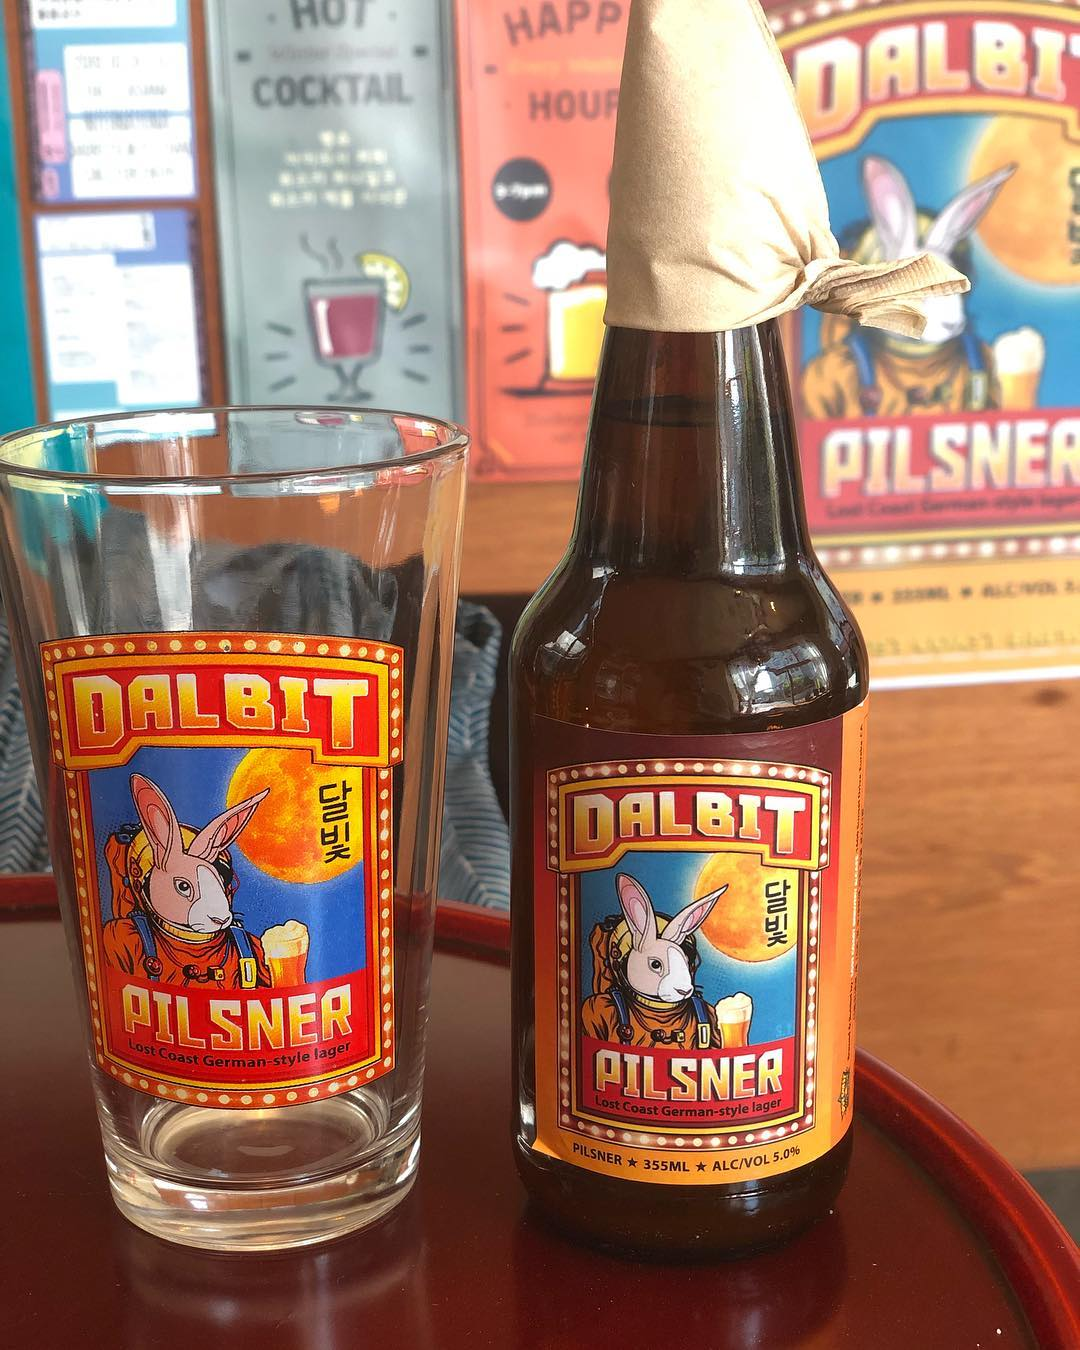 Yesterday I went to a bar that served a craft beer called Dalbit Pilsner.  This pilsner, made in the US exclusively for Korea, has (similar to Taiwanese Spring Vodka) also made its marketing correctly.  On the label you can see a rabbit wearing a space suit holding a beer. He is obviously traveling to the moon as depicted in the background. This is a nod to the moon rabbit that exist in certain folklores. I have written about this in previous posts.  The brewery behind this Rabbit pilsner is Lost Coast Brewery located in Eureka, California. The owner of the brewery is Barbara Groom, she is one of only a few prominent women in a traditionally male-dominated industry.  Before she became a brewery owner, Barbara was a pharmacist, I guess she swapped jobs with the astronaut rabbit who once he landed on the moon became the moon's own pharmacist.